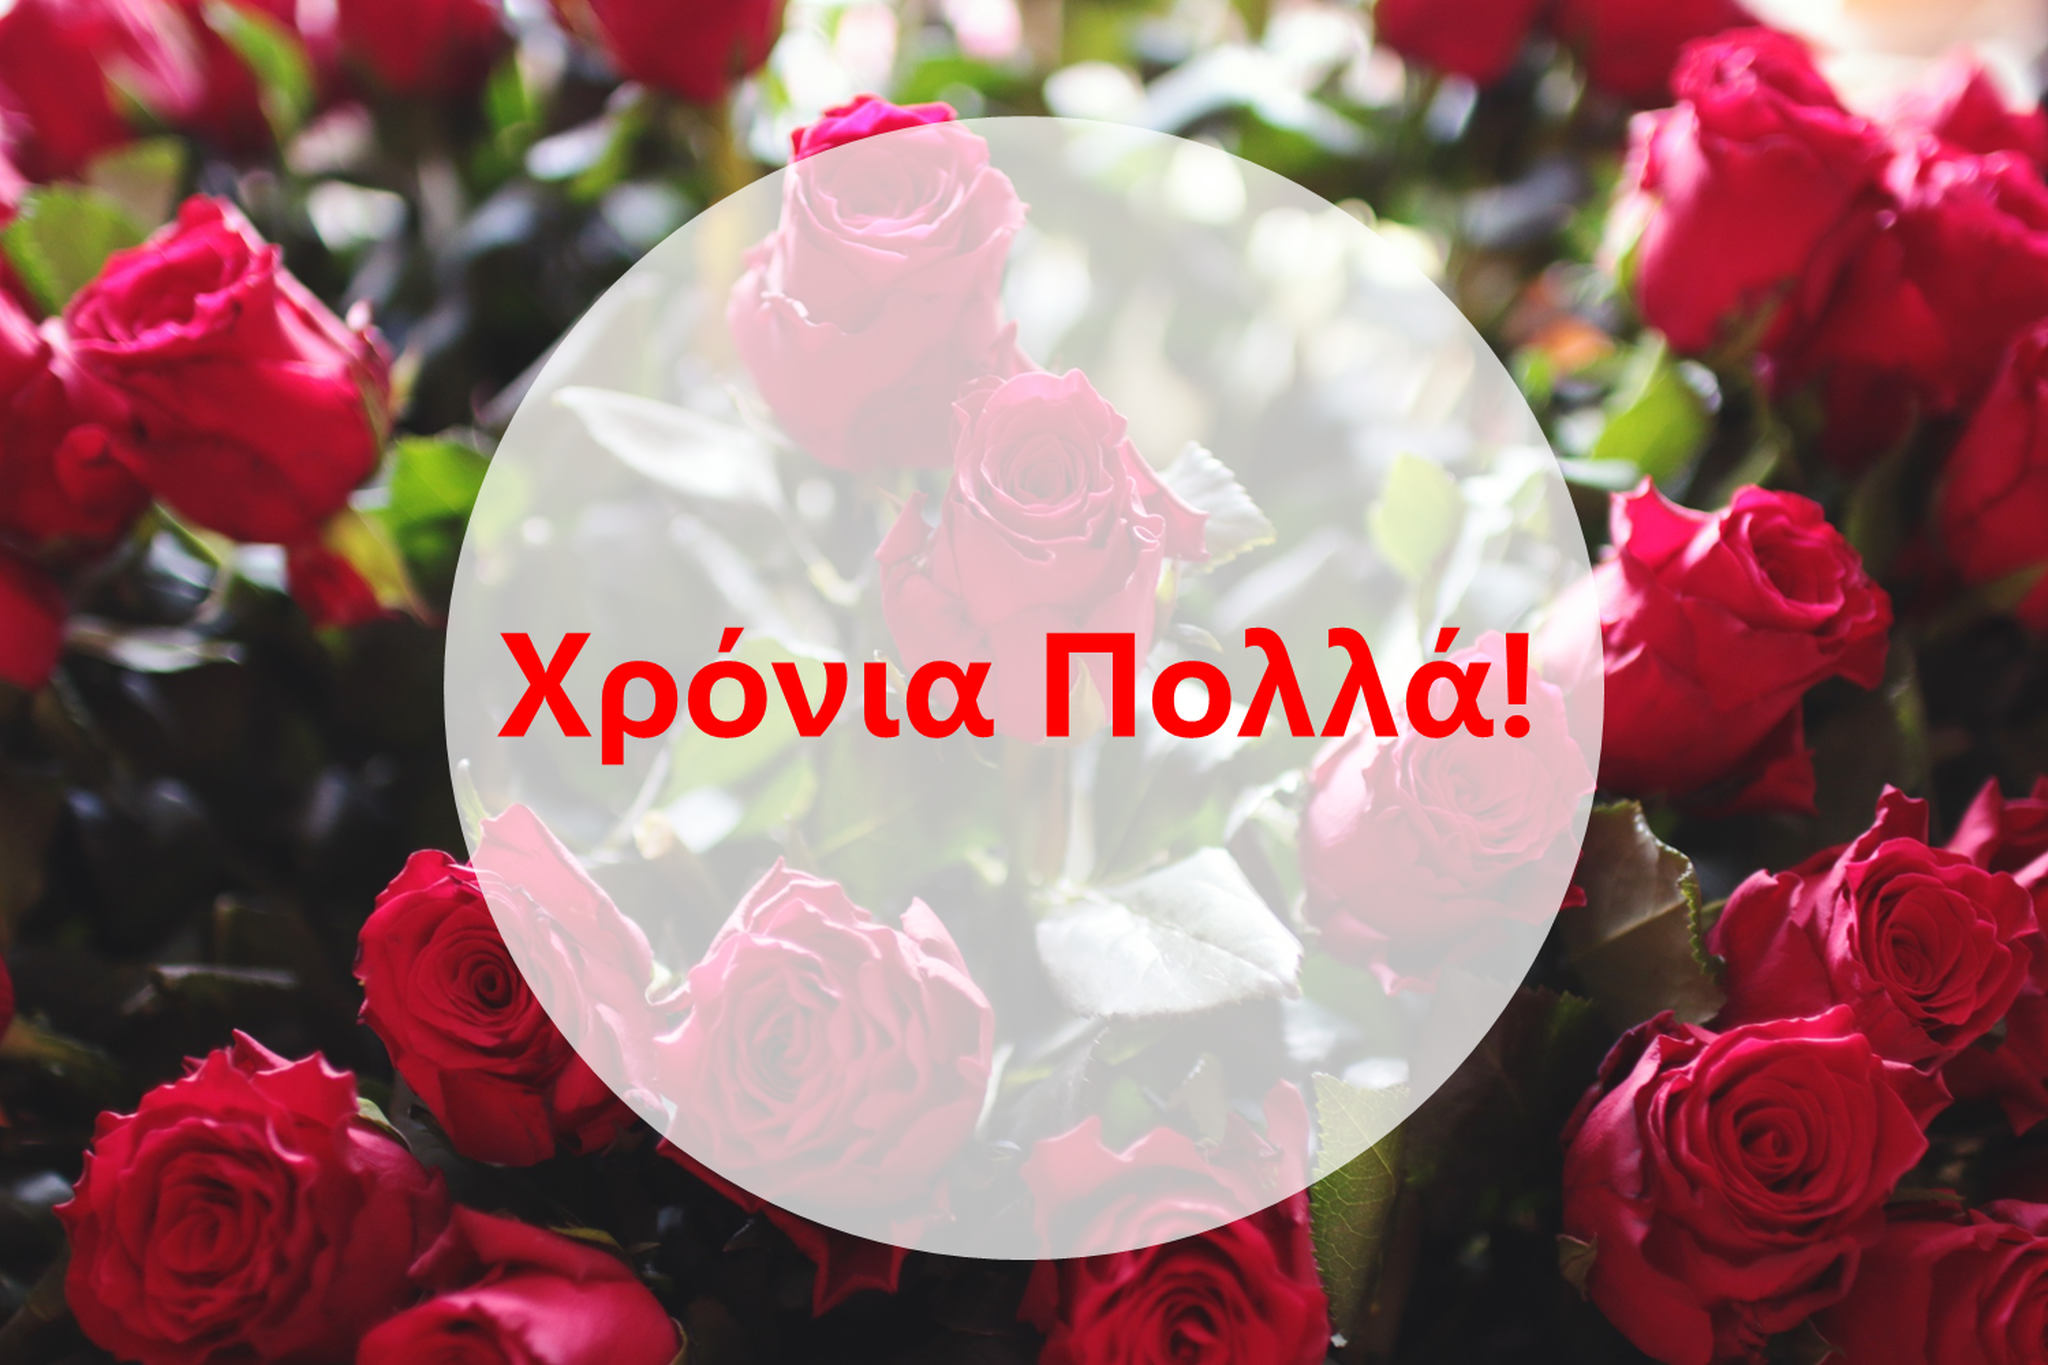 How to wish something in Greek during celebrations and social occasions